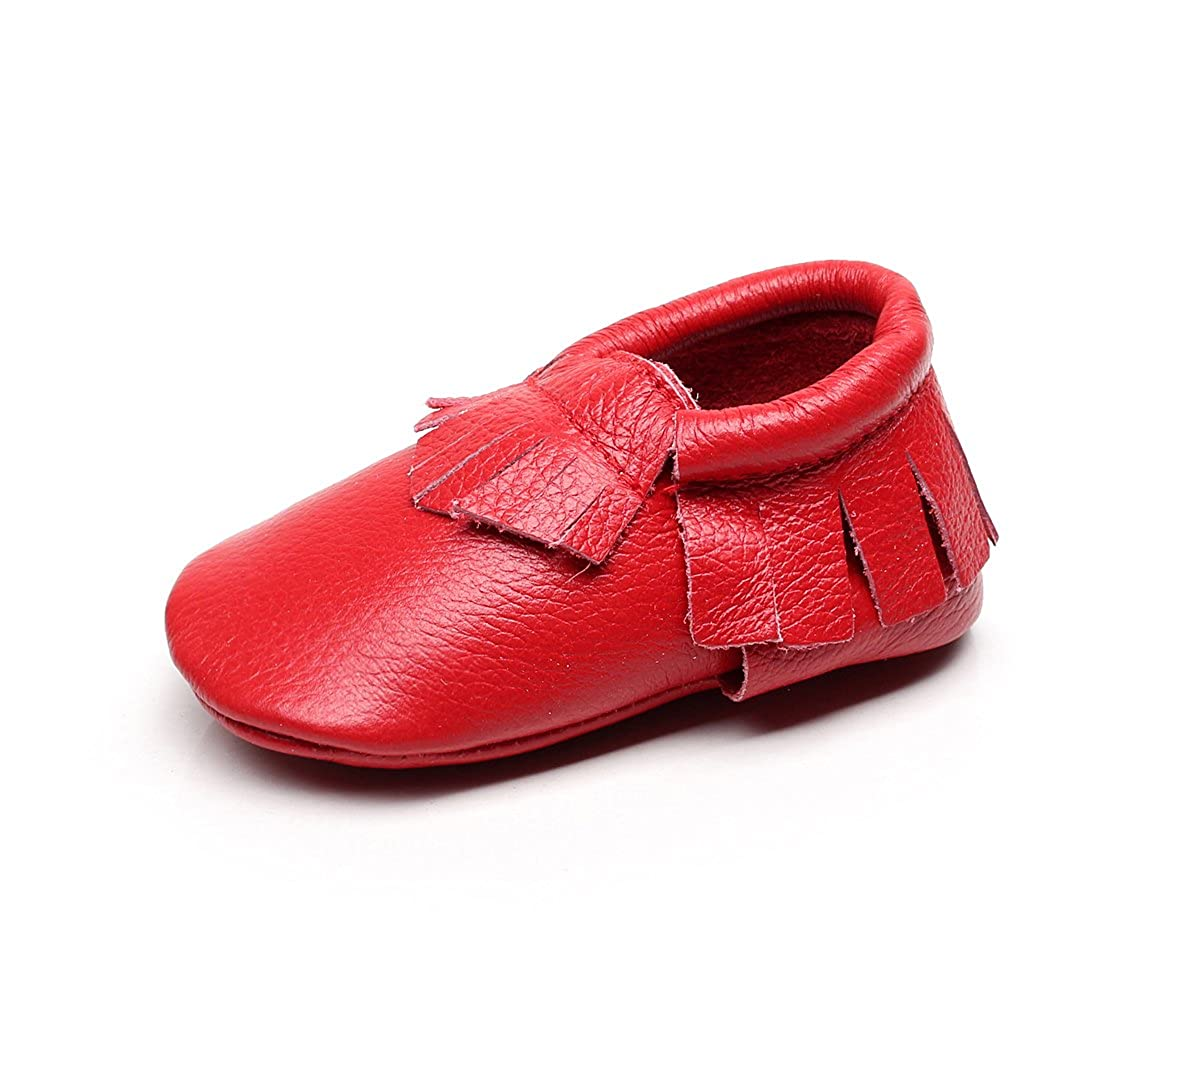 MIGO BABY Moccasins - Soft Genuine Leather Sole Baby Shoes and Toddler Moccasins for Boys and Girls